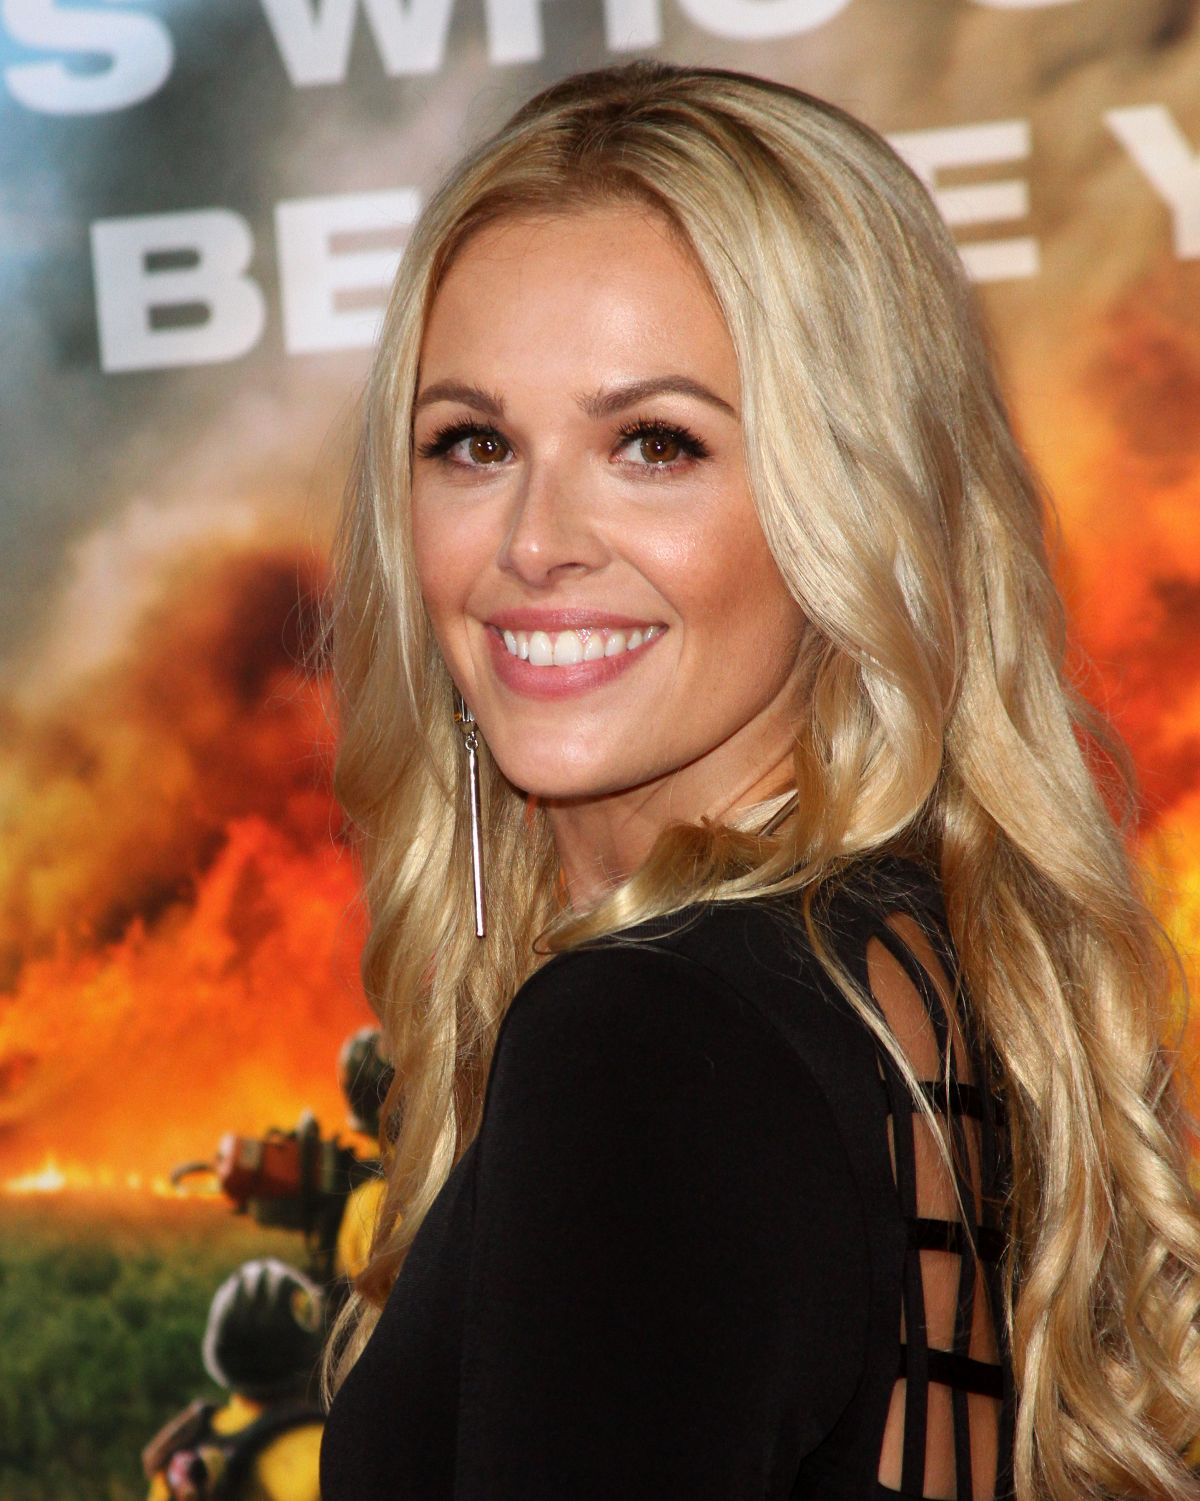 Natalie Hall At 'Only The Brave' film premiere, Los Angeles   natalie-hall-at-only-the-brave-film-premiere-los-angeles-35